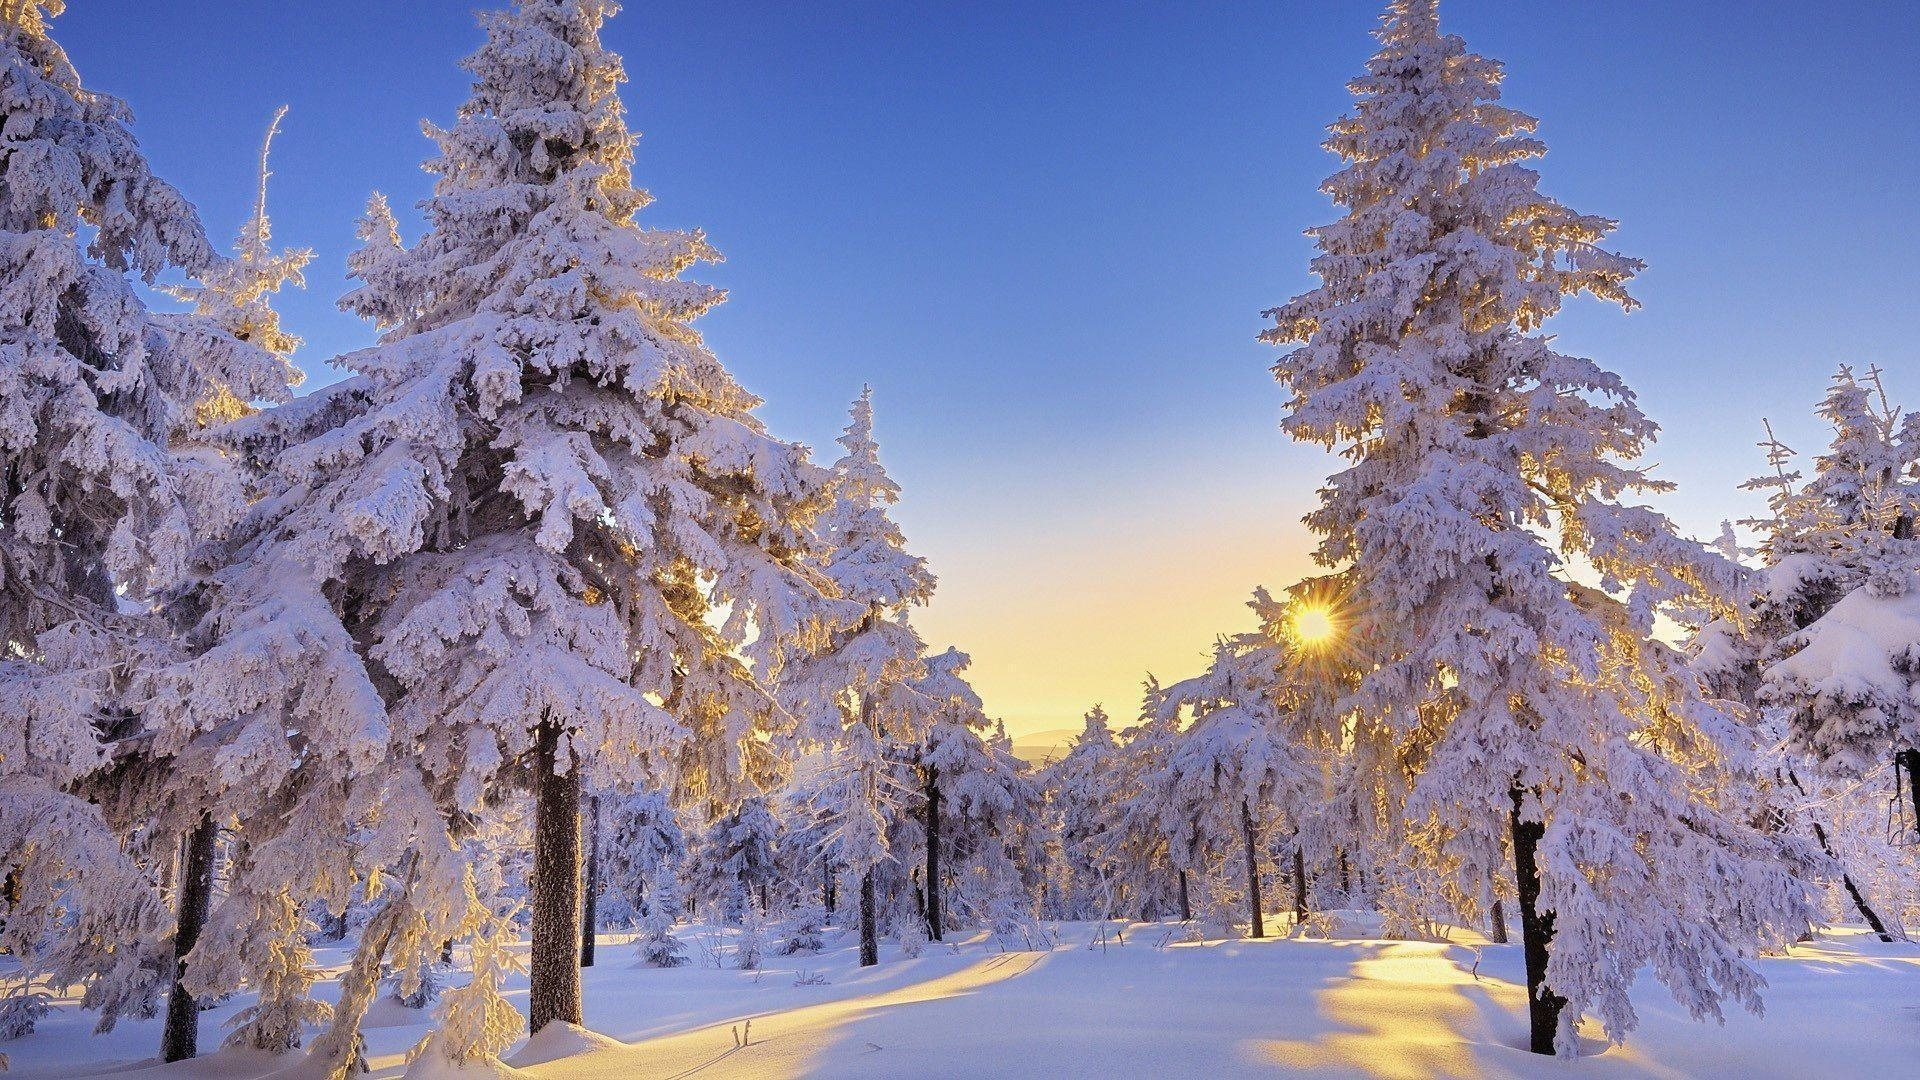 10 Best Winter Wonderland Desktop Background FULL HD 1080p For PC Background